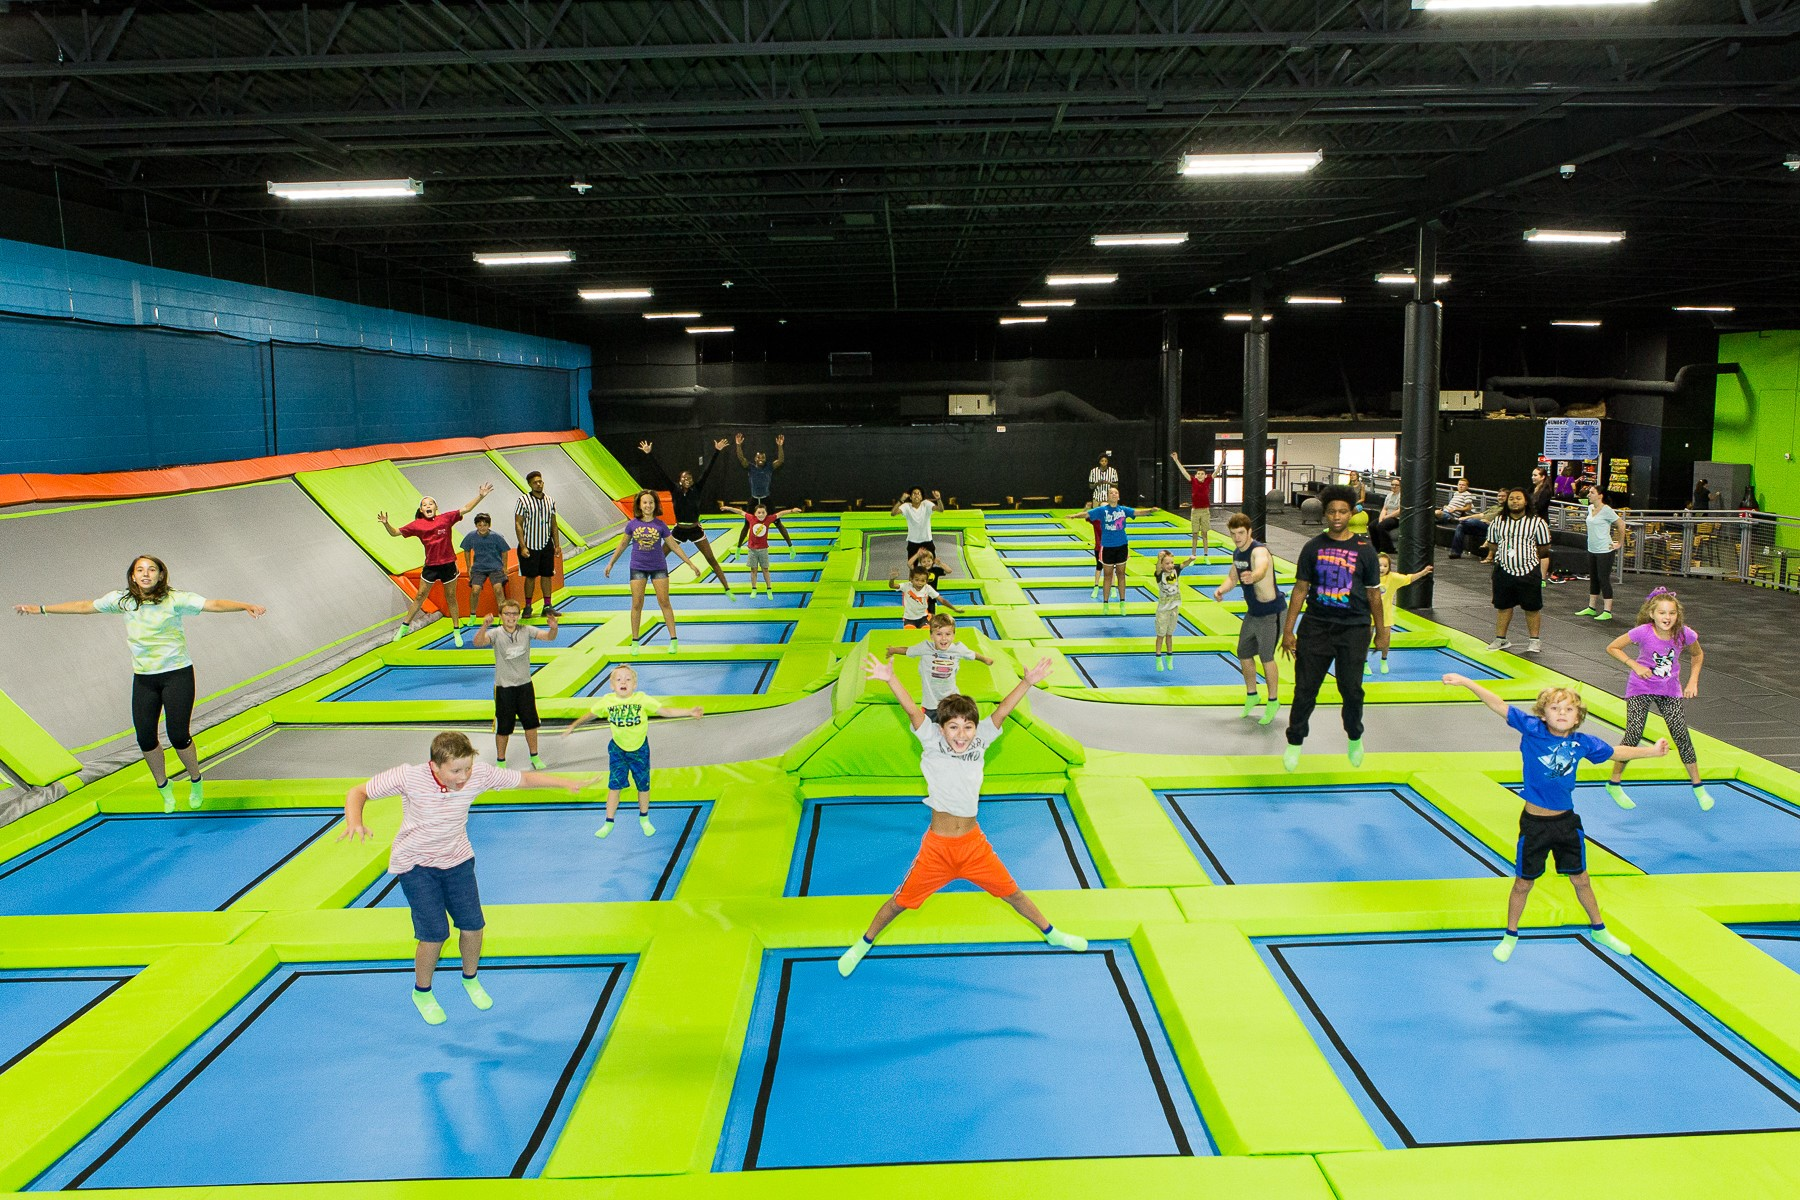 *Facebook Friday Freebie! Win a Family Four Pack of FUN at Xdrenaline!